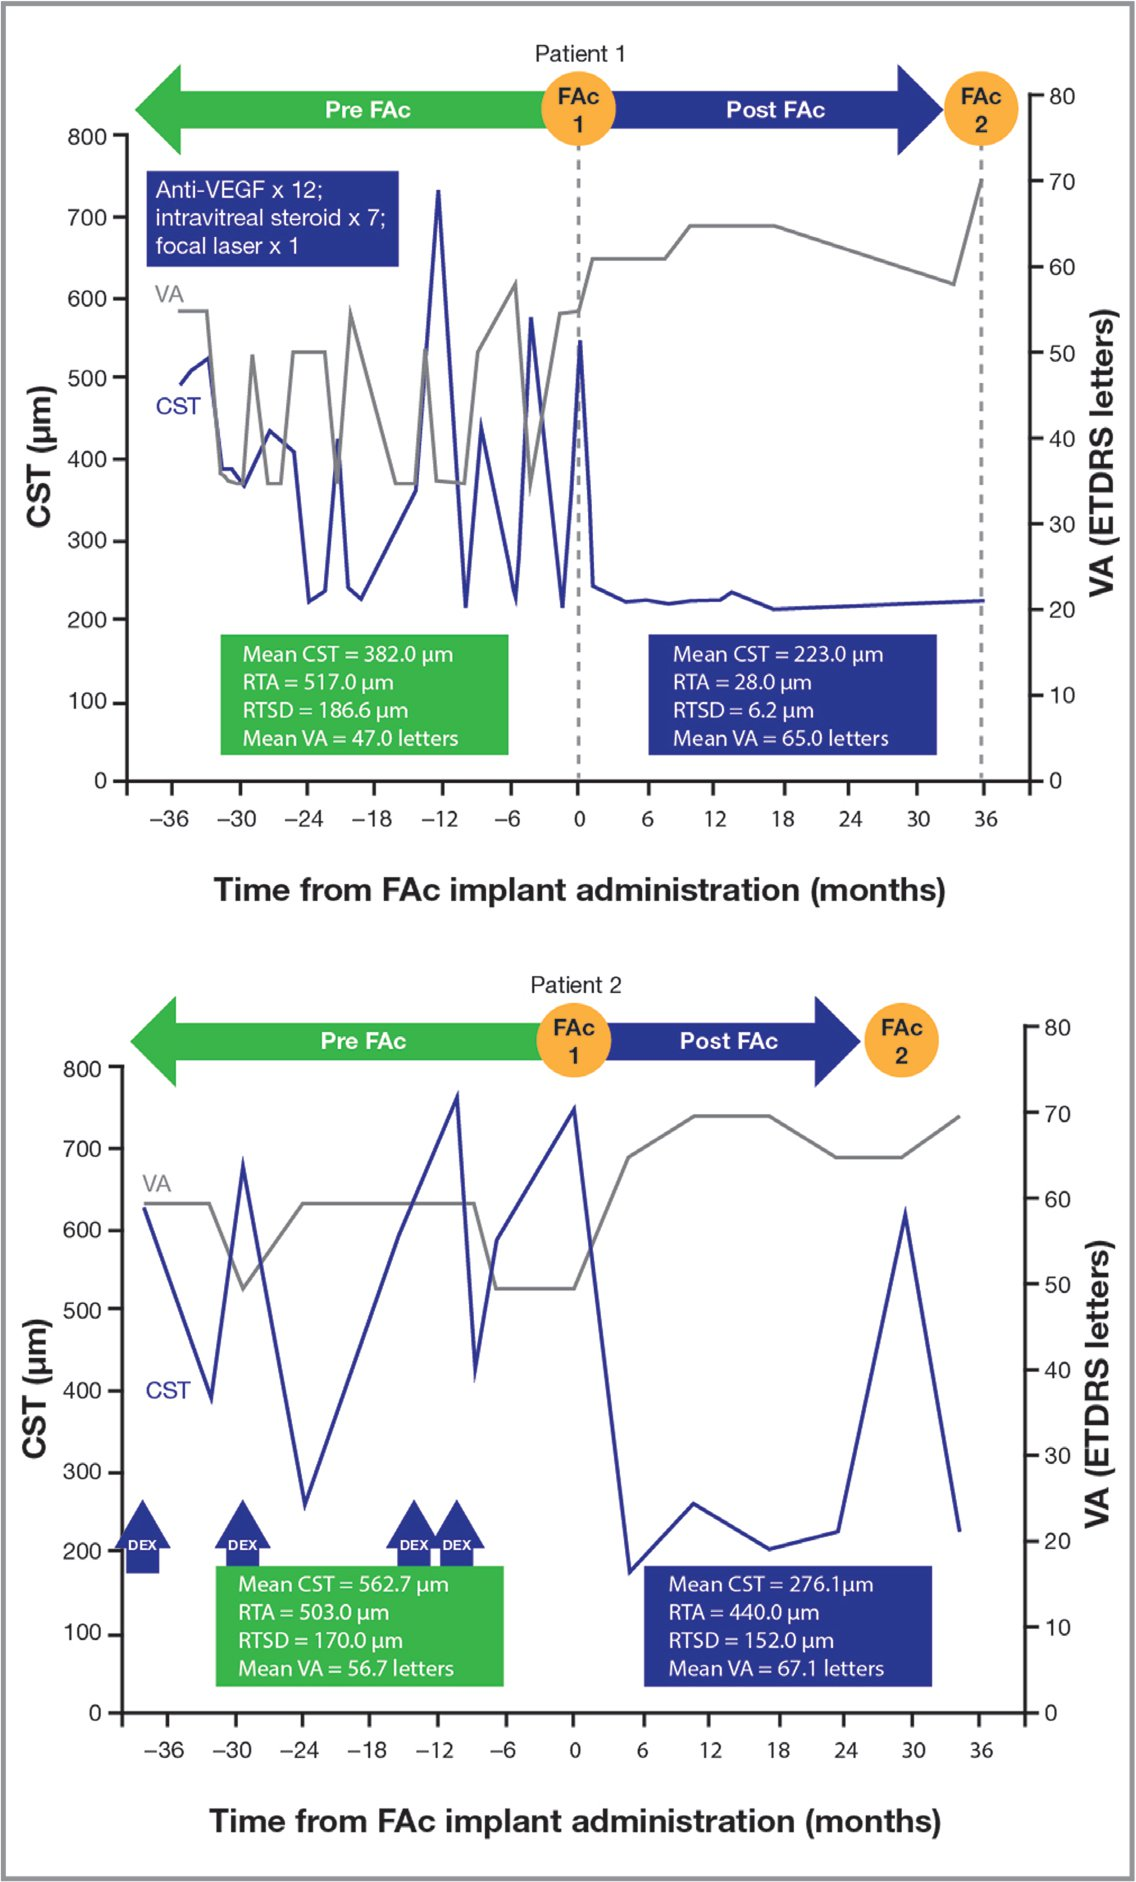 The effect of transitioning from discontinuous therapies to fluocinolone acetonide (FAc) implant treatment on central subfield thickness (CST), retinal thickness amplitude (RTA), retinal thickness standard deviation (RTSD), and visual acuity (VA) in two illustrative patient case studies (not from the USER dataset). Patient 1 data courtesy of Dhoot DS. Case data presented at: Scientific Advisory Board meeting, American Academy of Ophthalmology Annual Meeting; October 28, 2018; Chicago, IL. Patient 2 data courtesy of Singh P, Chedid A, Deuchler SK, Kohnen T, Muller M, Koch FH. The efficacy and safety outcomes of the 0.19 mg fluocinolone acetonide implant after prior treatment with the 0.7mg dexamethasone implant in patients with diabetic macular edema. Int Med Case Rep J. 2018;15(11): 265–269.Anti-VEGF = anti-vascular endothelial growth factor; ETDRS = Early Treatment Diabetic Retinopathy Study